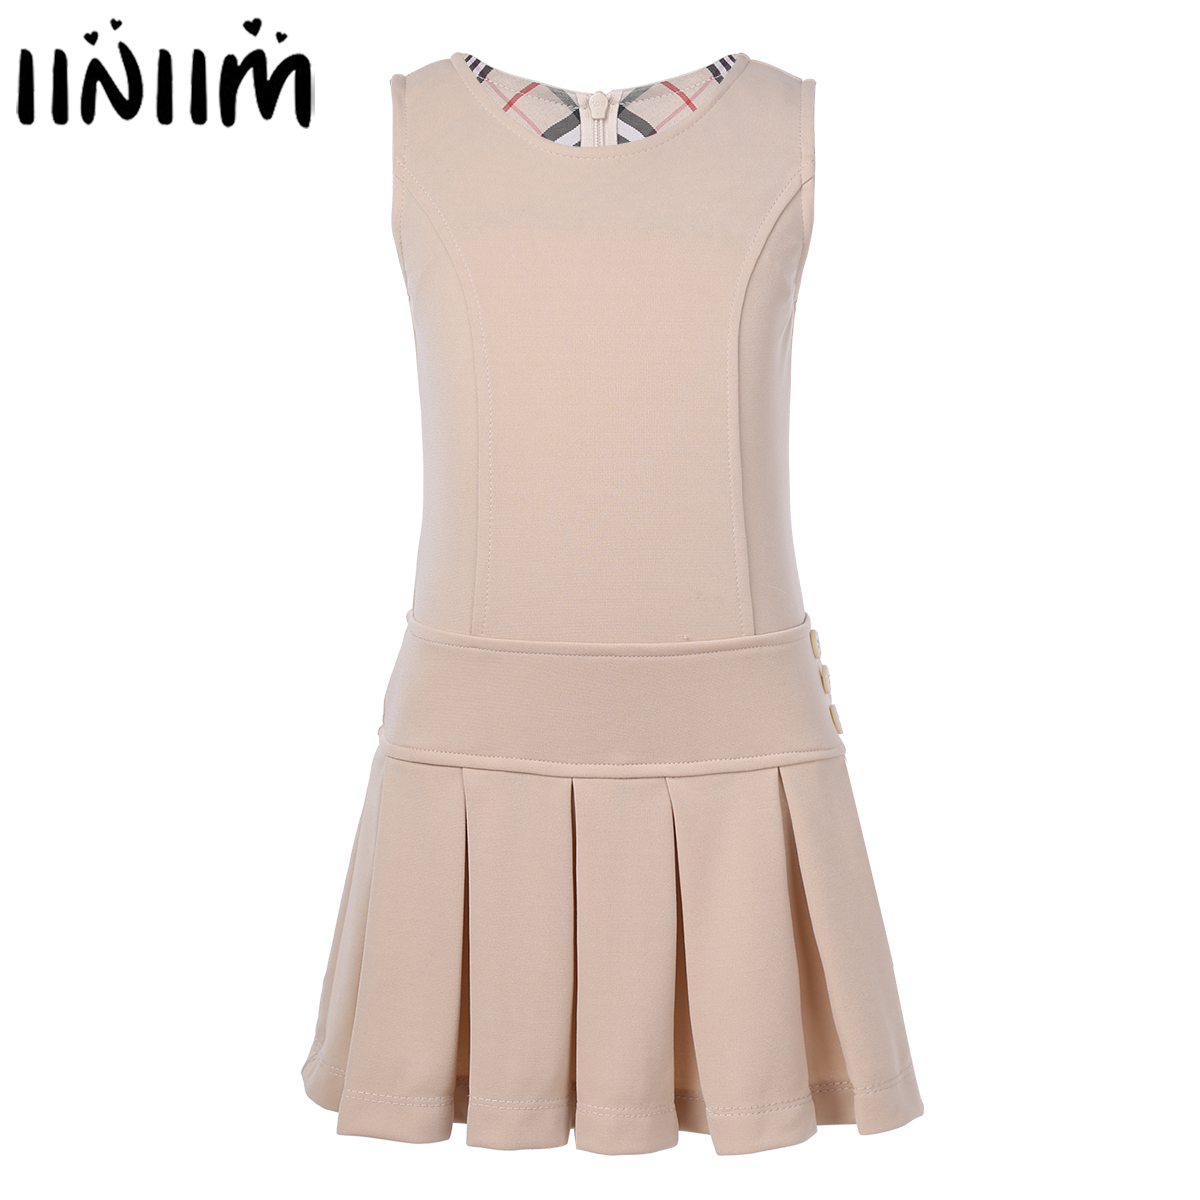 Iiniim Kids Girls Sleeveless School Uniforms Pleated Hem Dress Jumper With Decorated Buttons For Party School Casual Dress